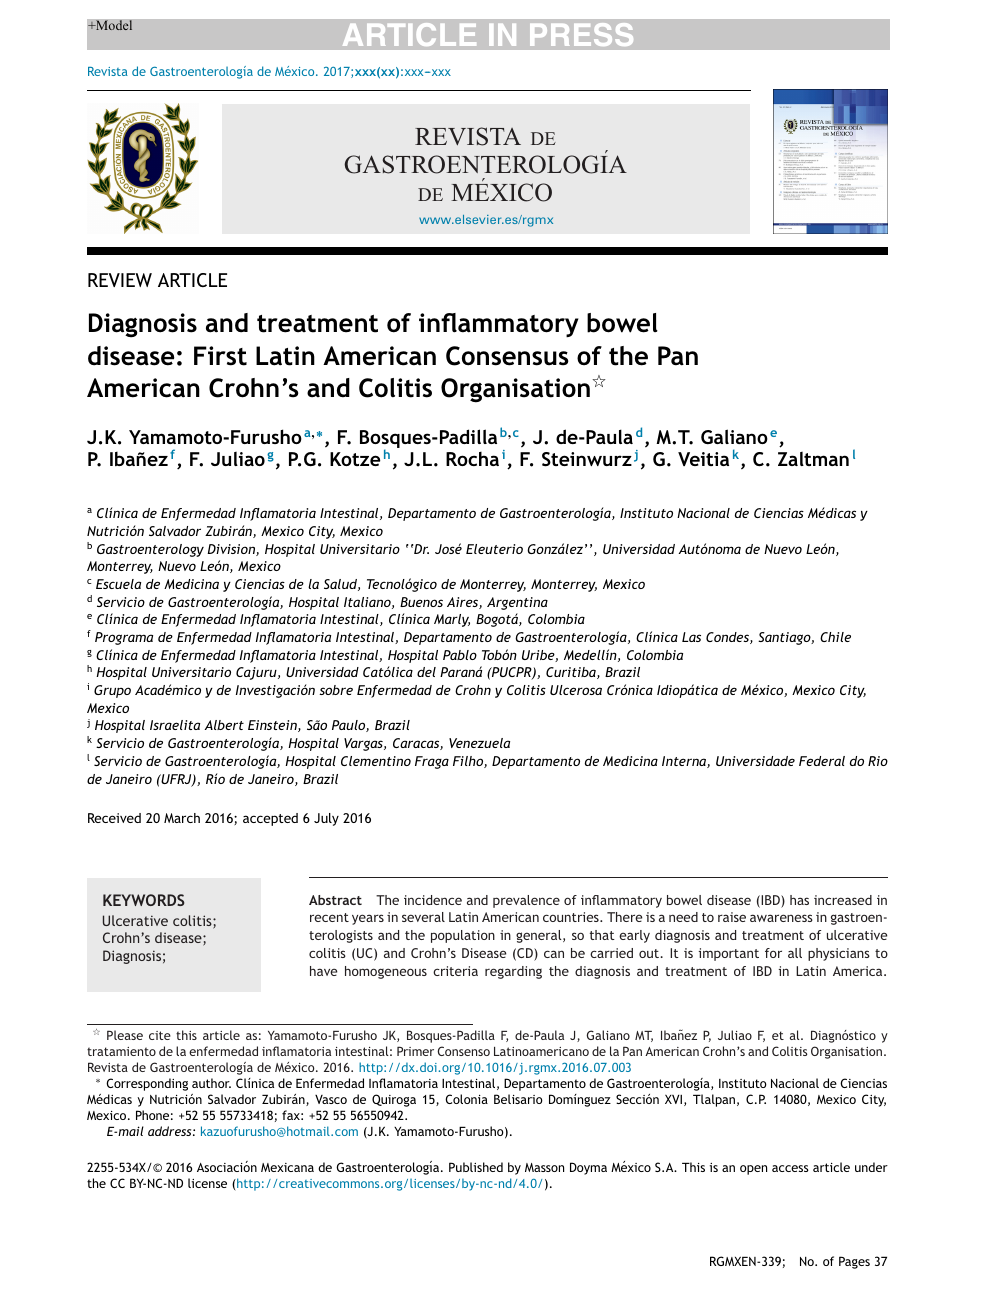 Diagnosis And Treatment Of Inflammatory Bowel Disease First Latin American Consensus Of The Pan American Crohn S And Colitis Organisation Topic Of Research Paper In Clinical Medicine Download Scholarly Article Pdf And